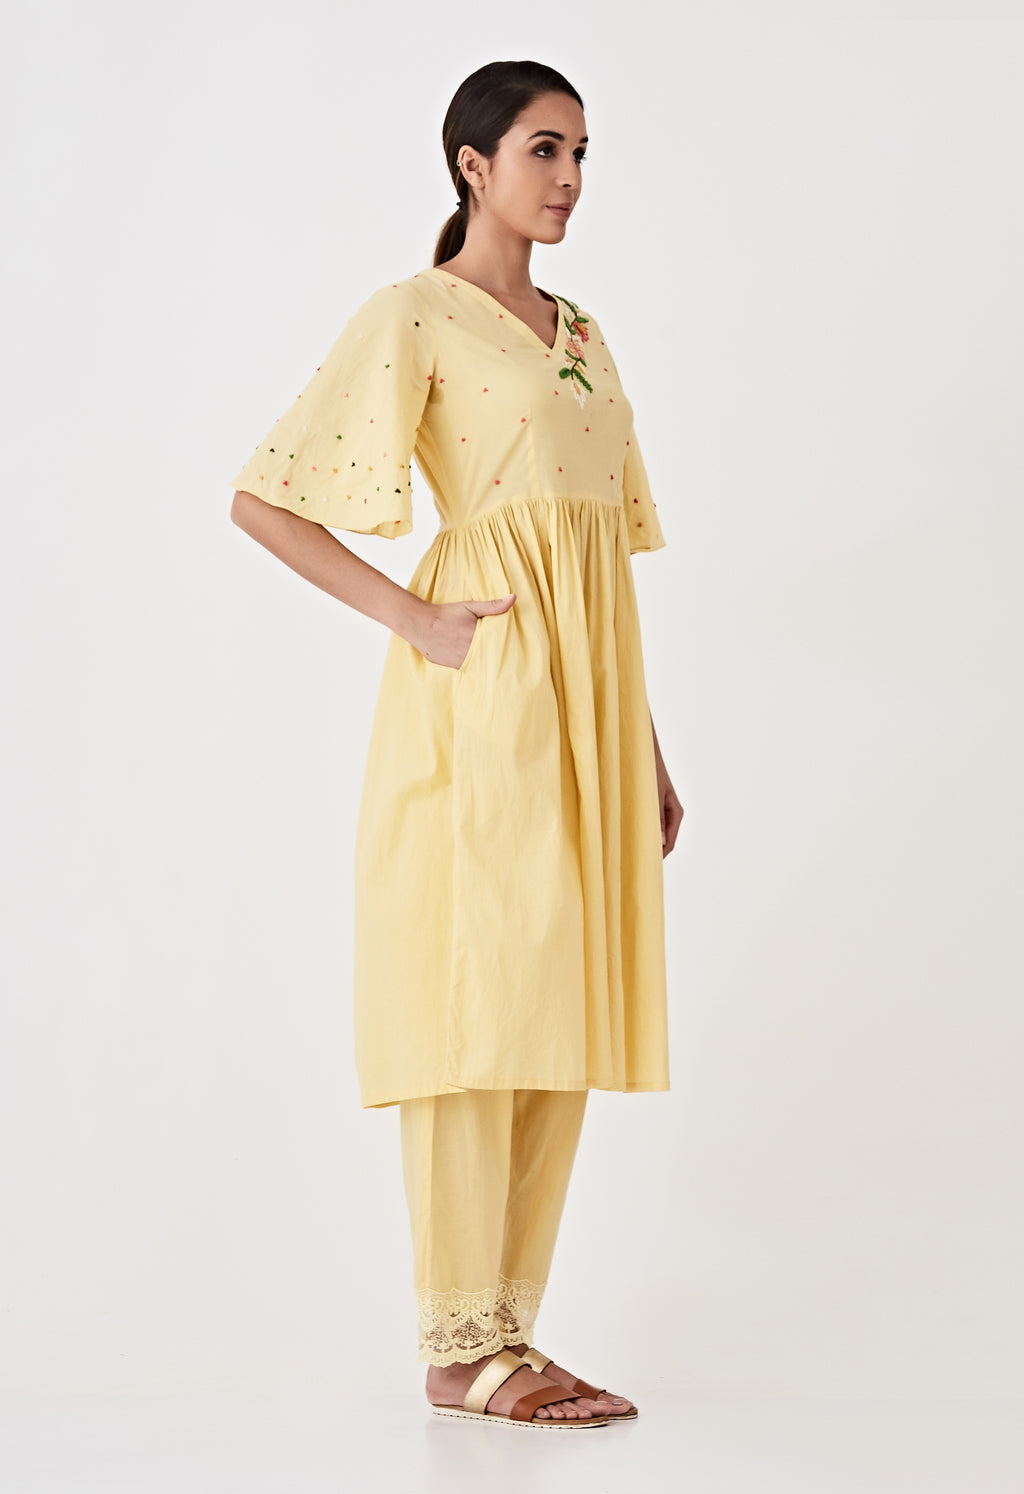 Yellow co-ordinate Set